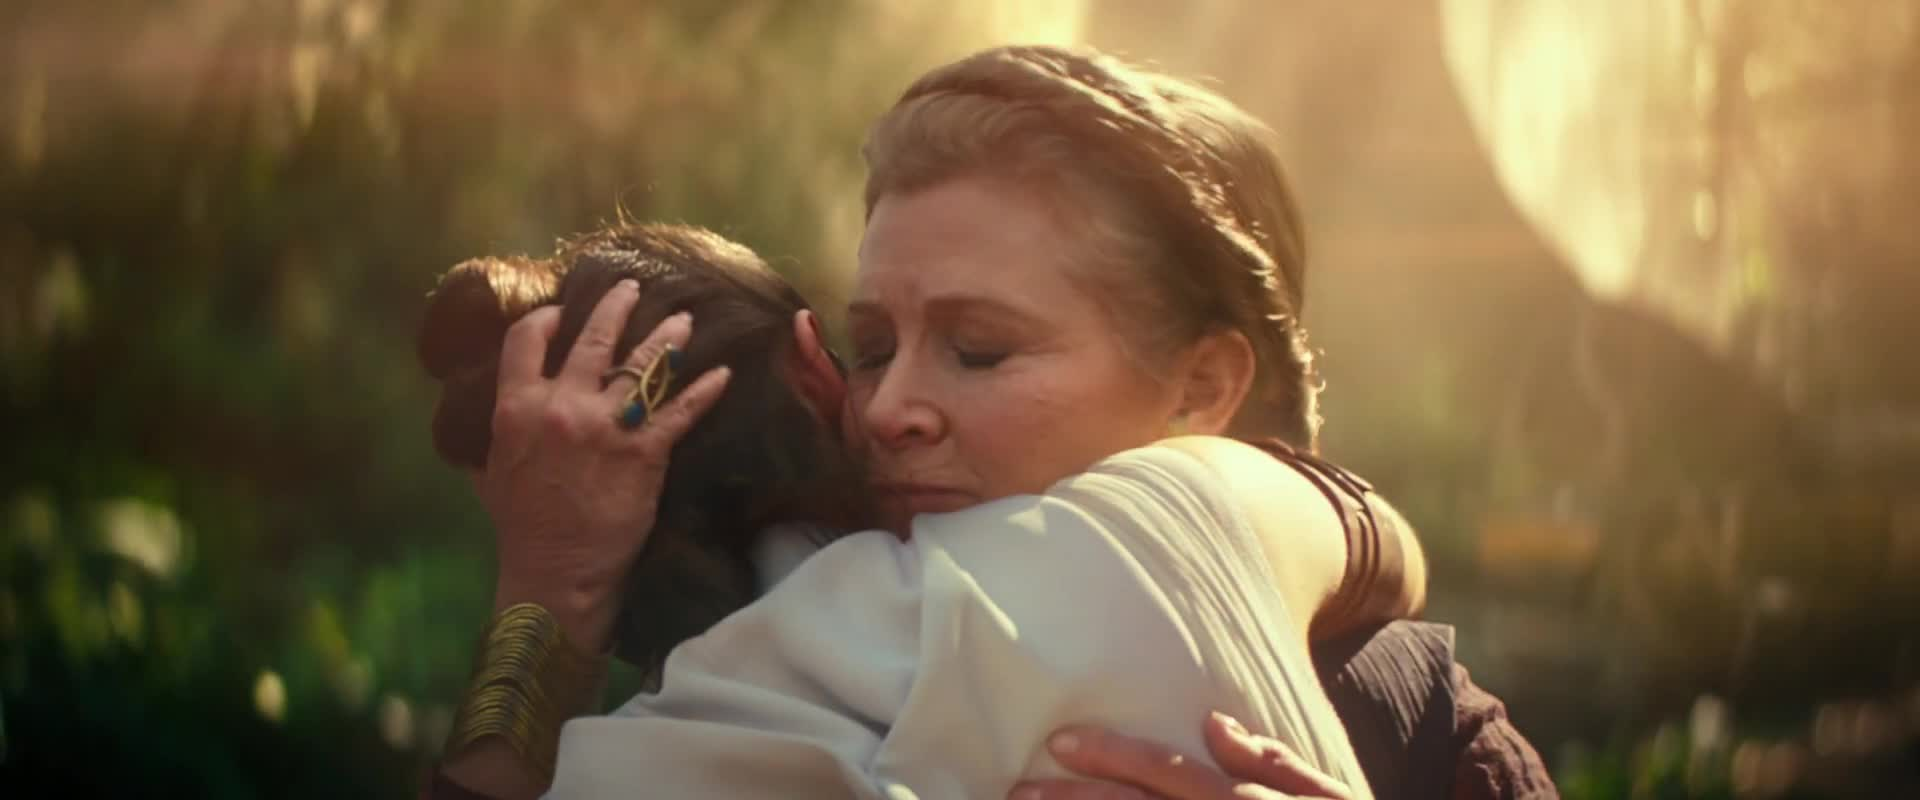 daisy ridley, hug, rey, star wars, star wars episode 9, star wars the rise of skywalker, the rise of skywalker, Star Wars Episode IX – Teaser GIFs